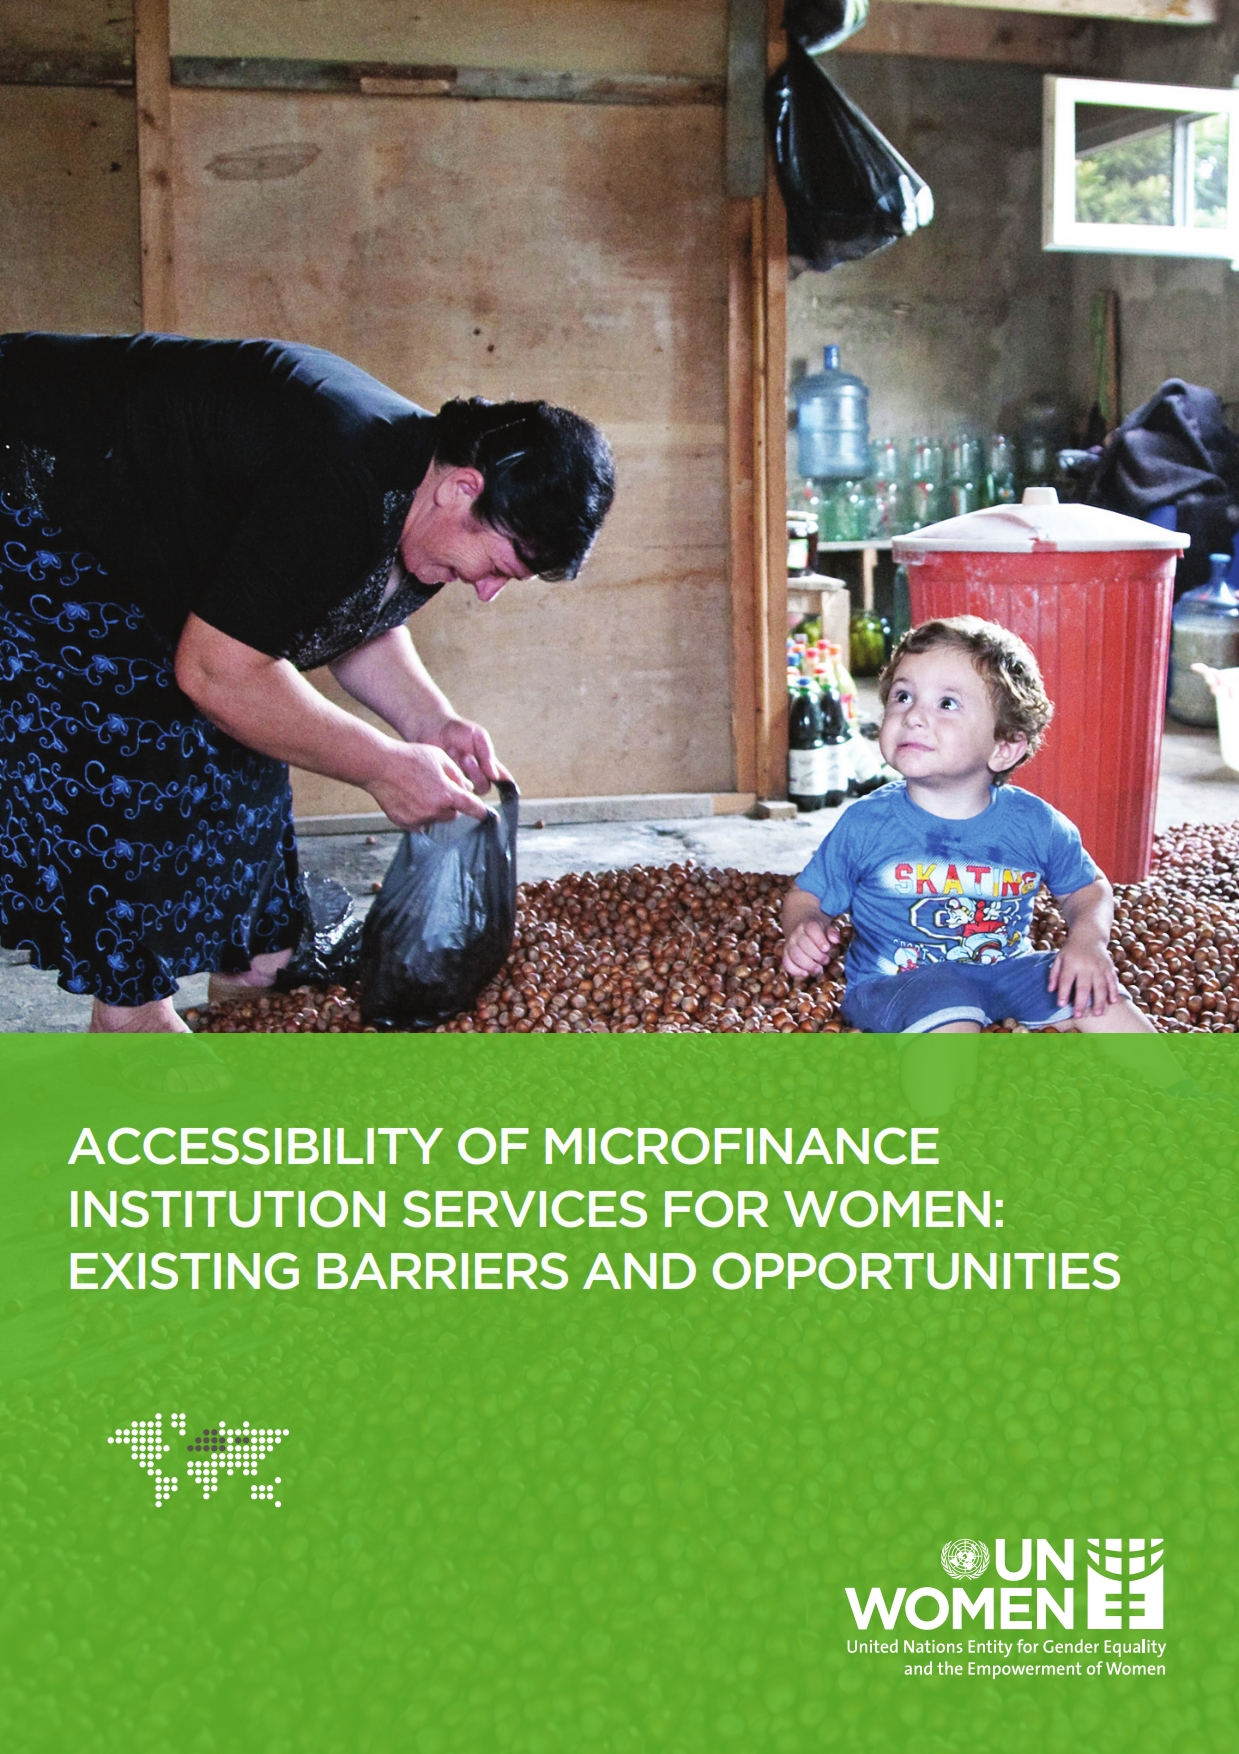 Accessibility of Microfinance Institution Services for Women: Existing Barriers and Opportunities